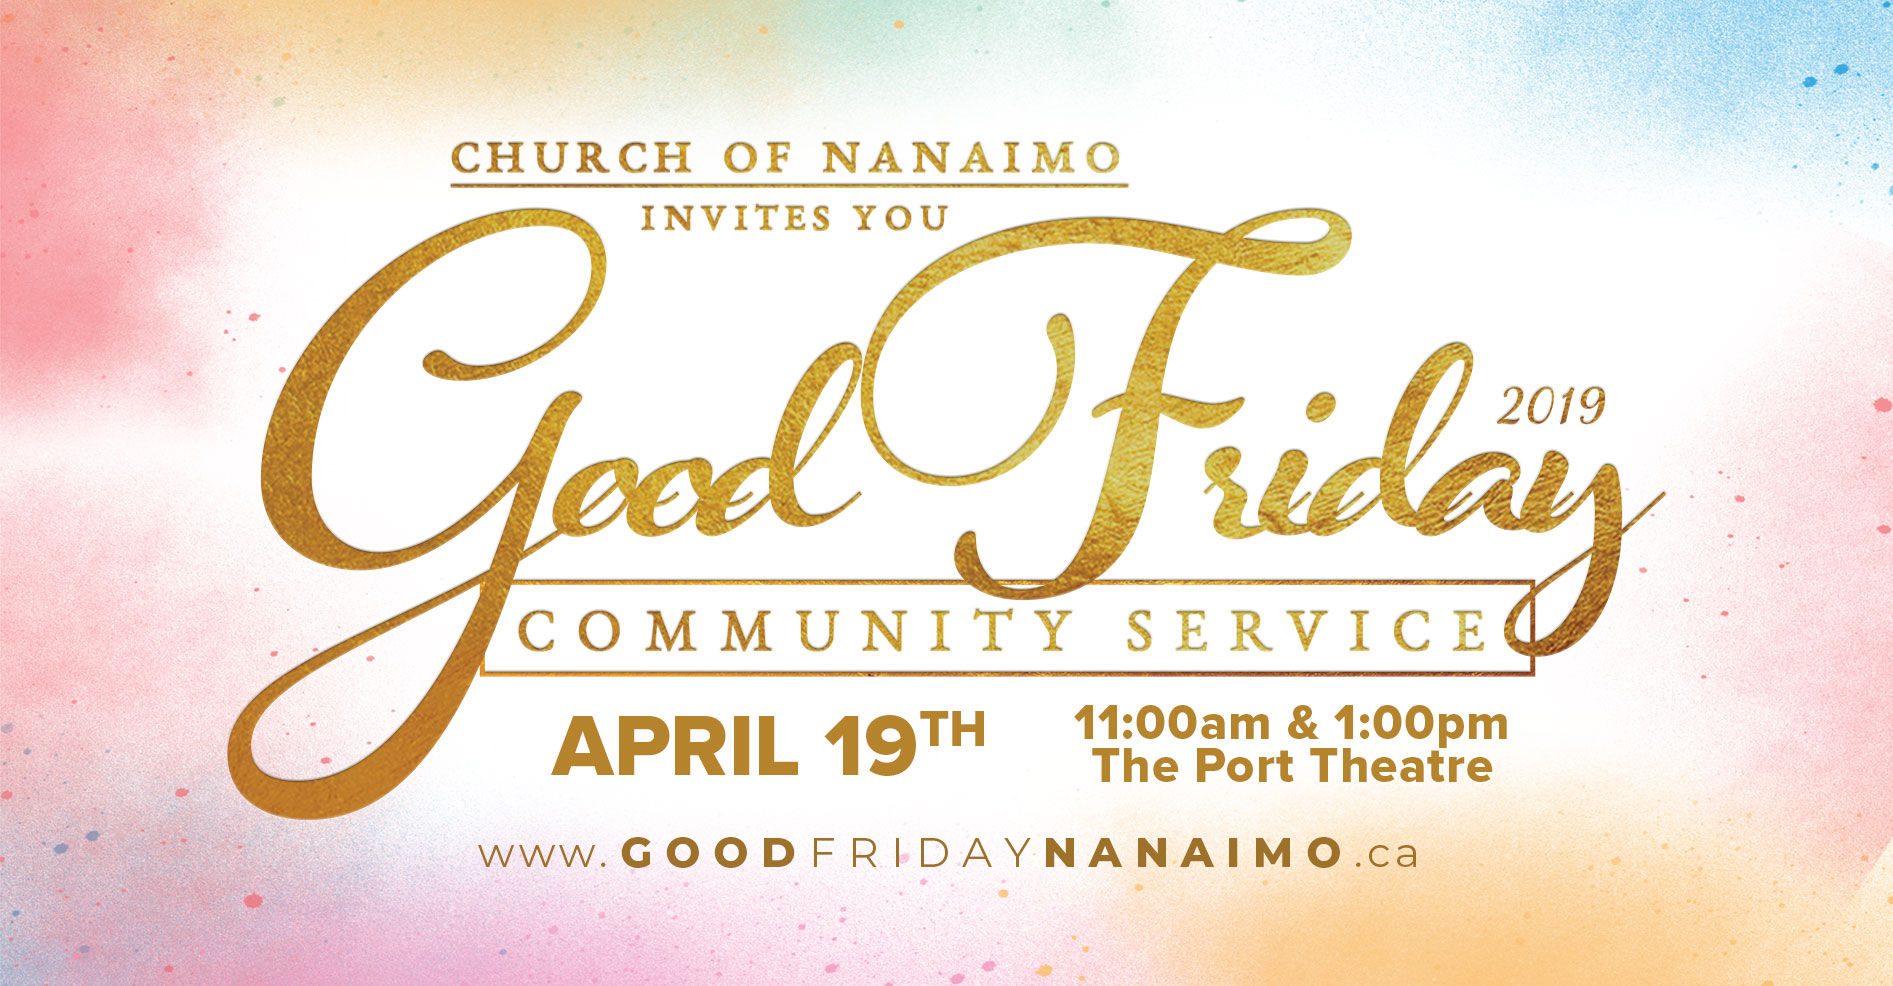 Good Friday 2019 at The Port Theatre